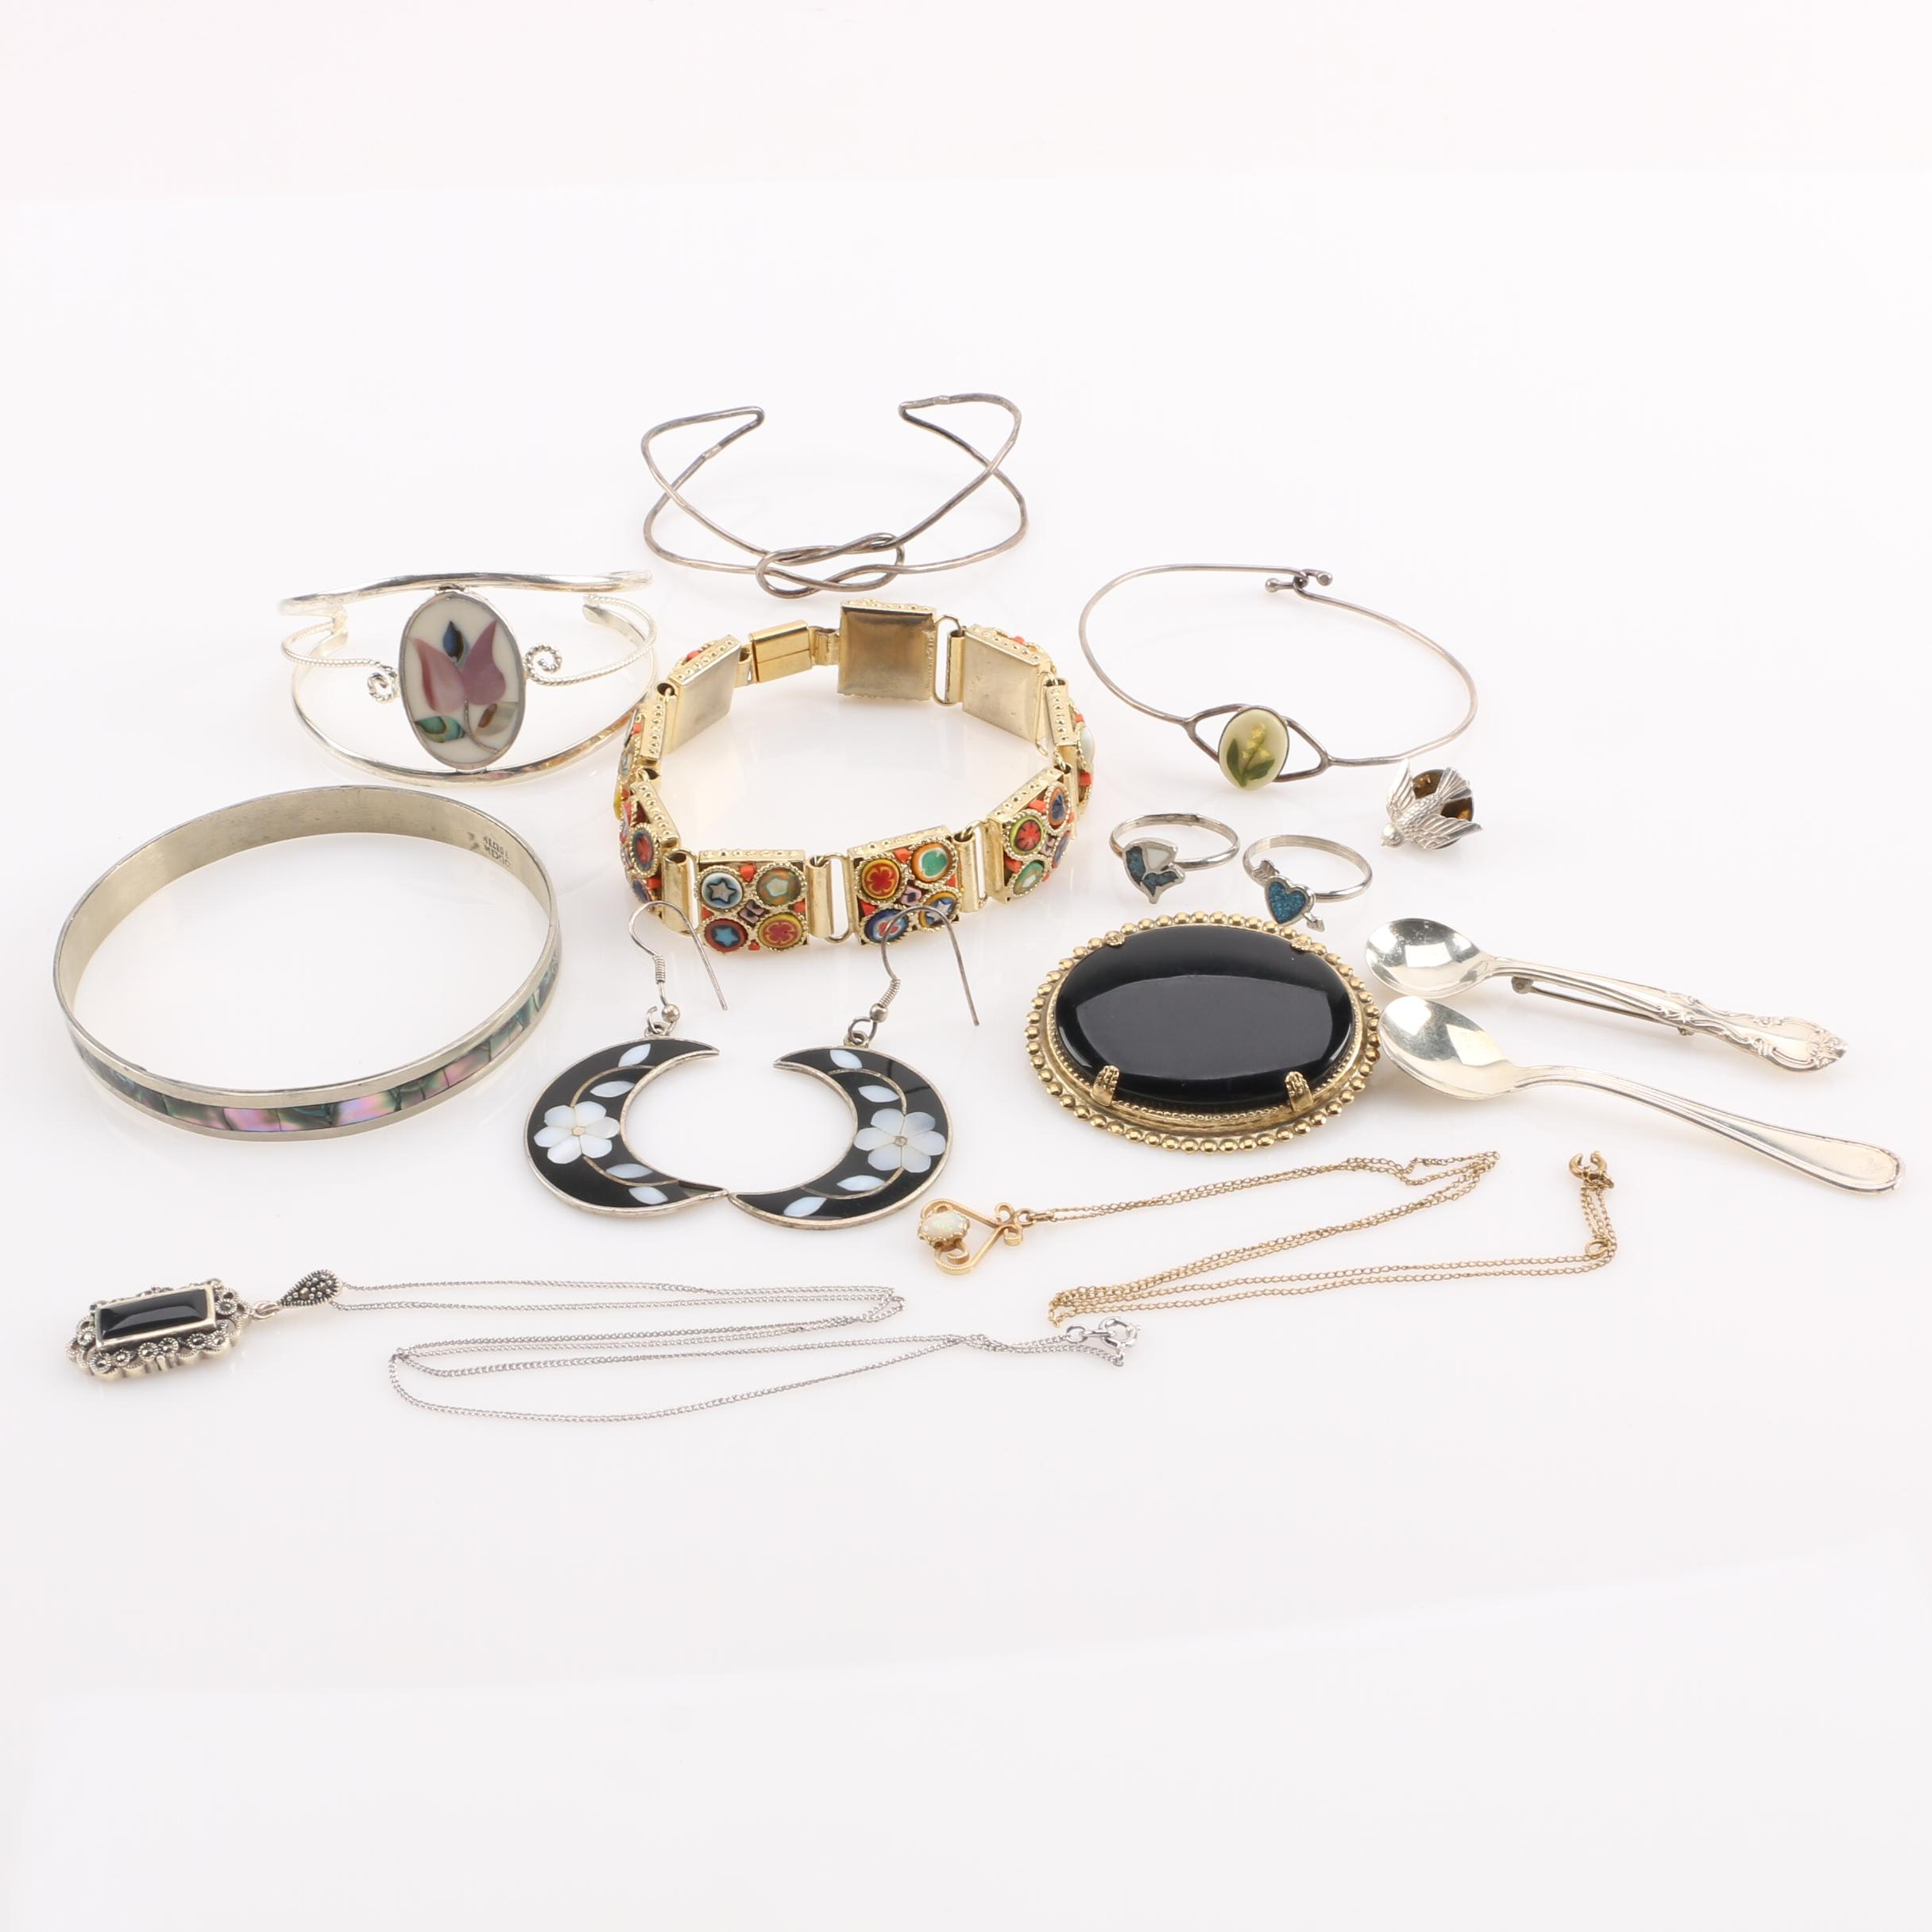 Sterling Silver and Gold-Tone Jewelry Selection Including Abalone and Shell